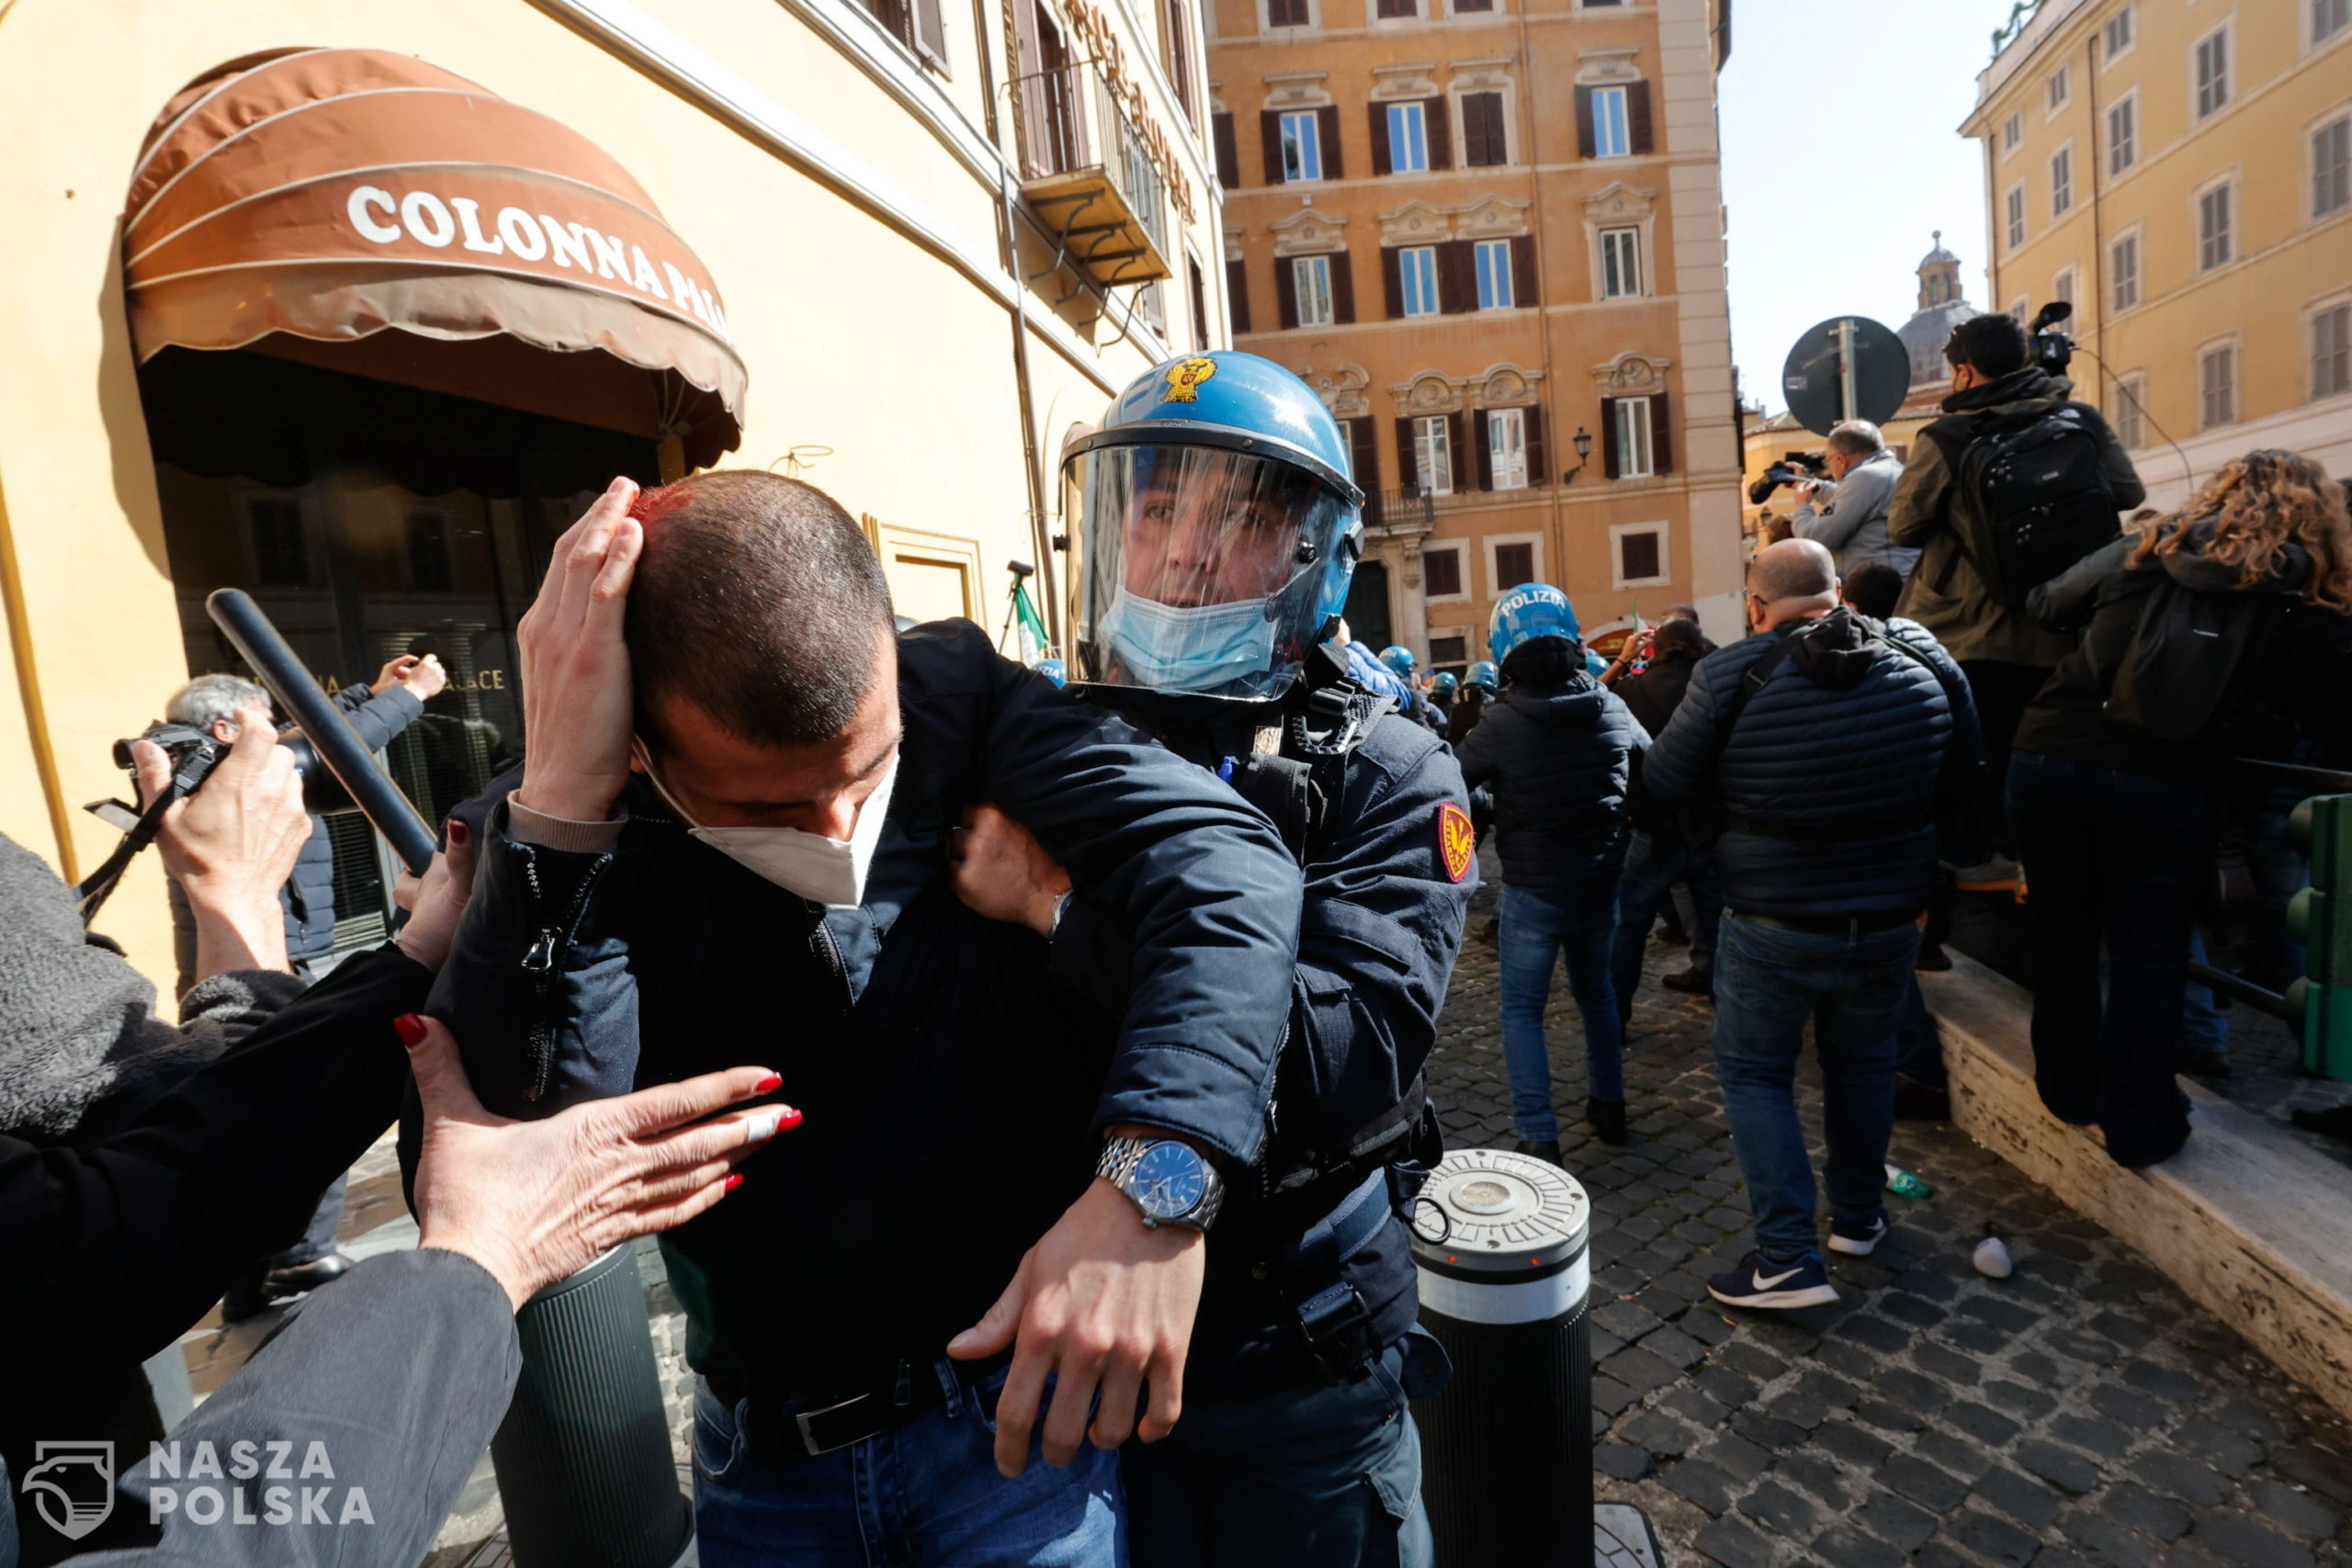 epa09118680 Traders, shopkeepers and restaurateurs clash with police during a protest next to the Chamber of Deputies in Piazza Montecitorio, Rome, Italy, 06 April 2021. The protesters, many with lowered masks, demand the reopening of their shops and restaurants amid the third COVID-19 pandemic lockdown measures.  EPA/GIUSEPPE LAMI  Dostawca: PAP/EPA.